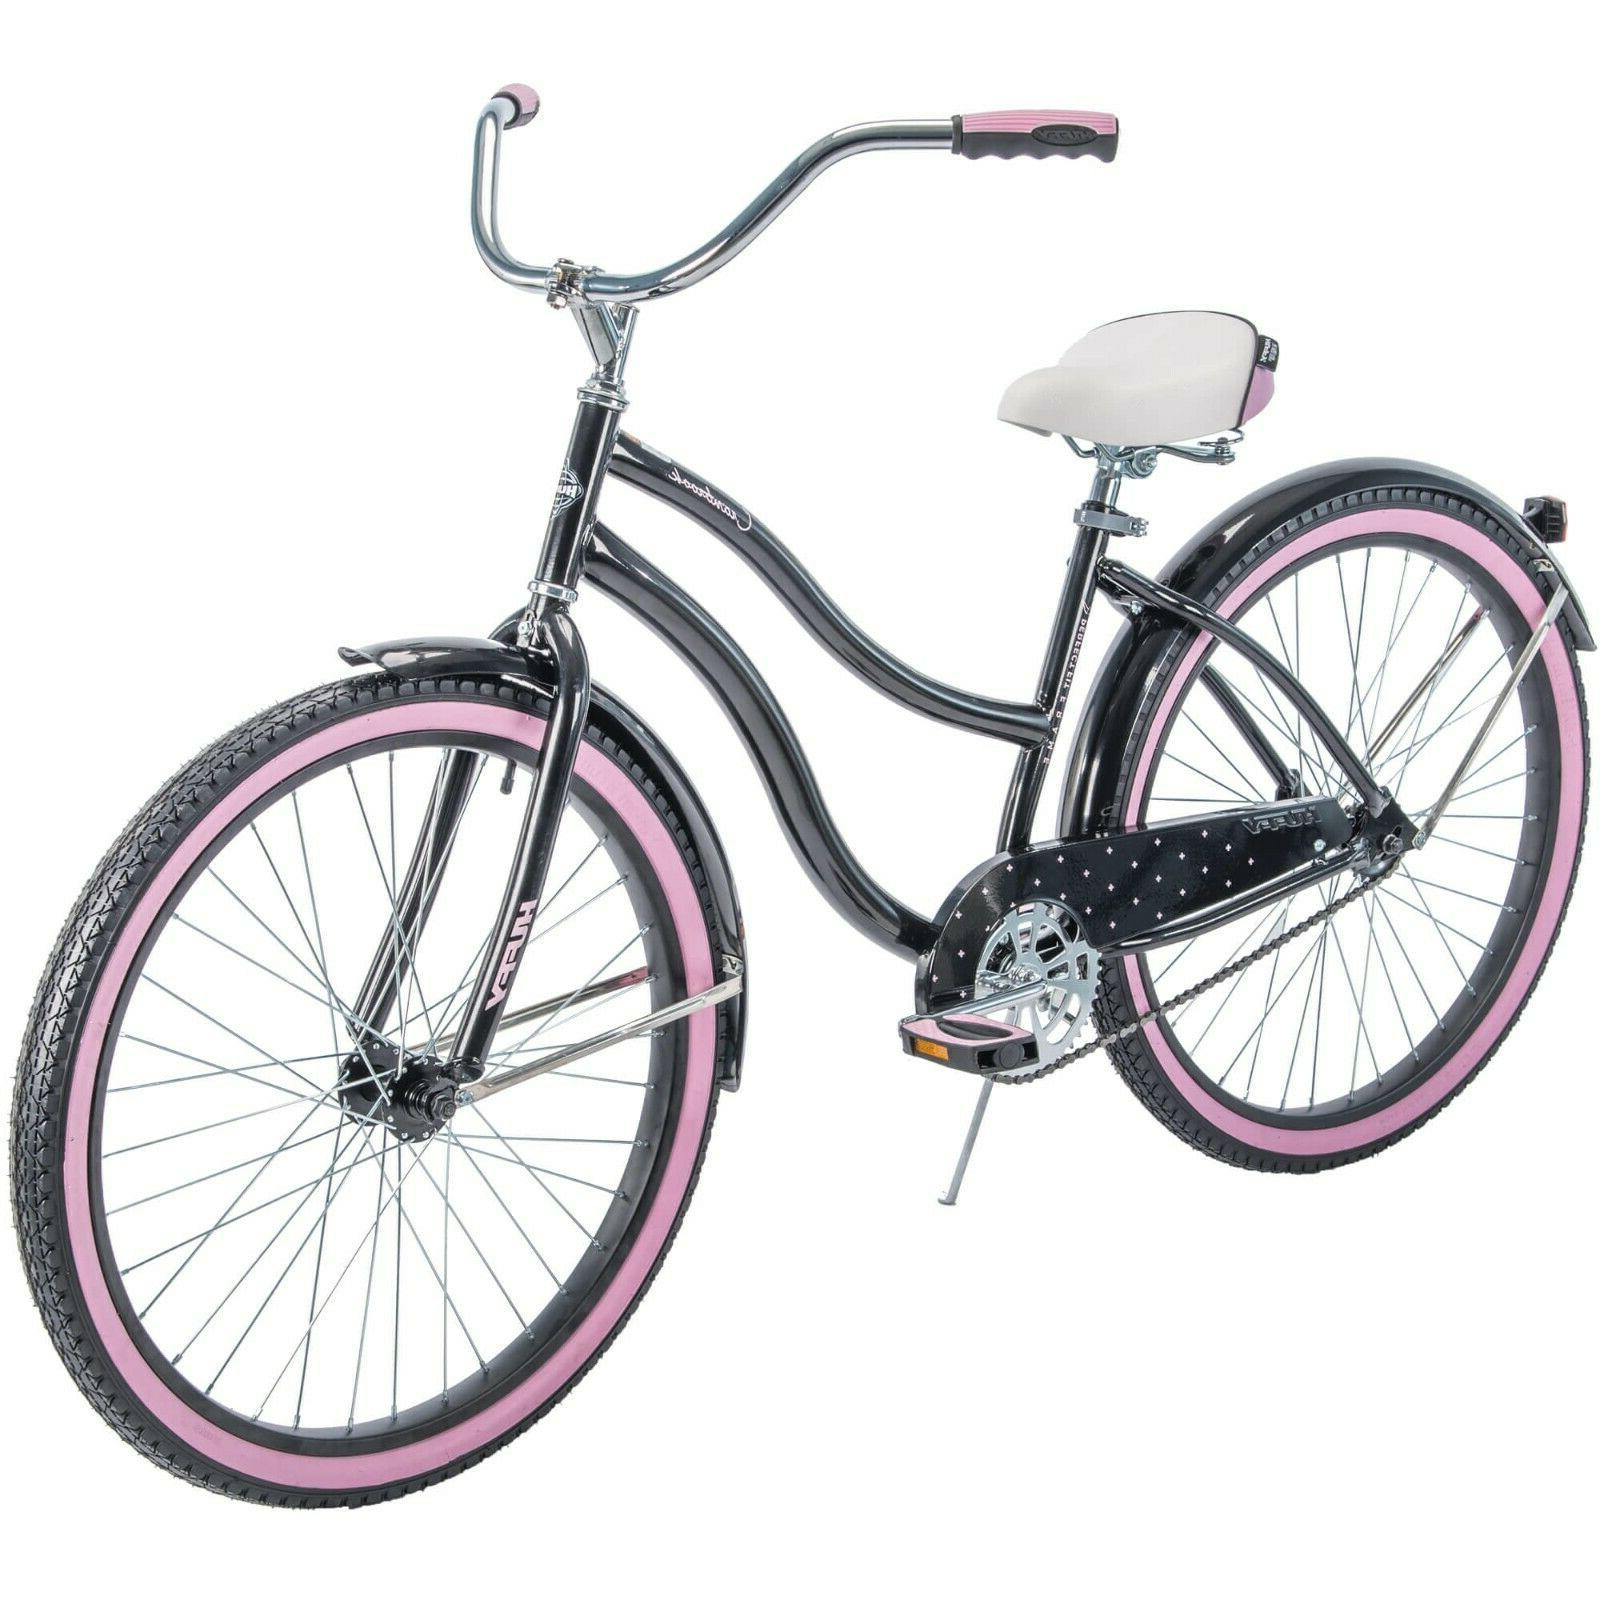 Huffy Women's Cruiser Bike with Perfect Fit Frame Shipping